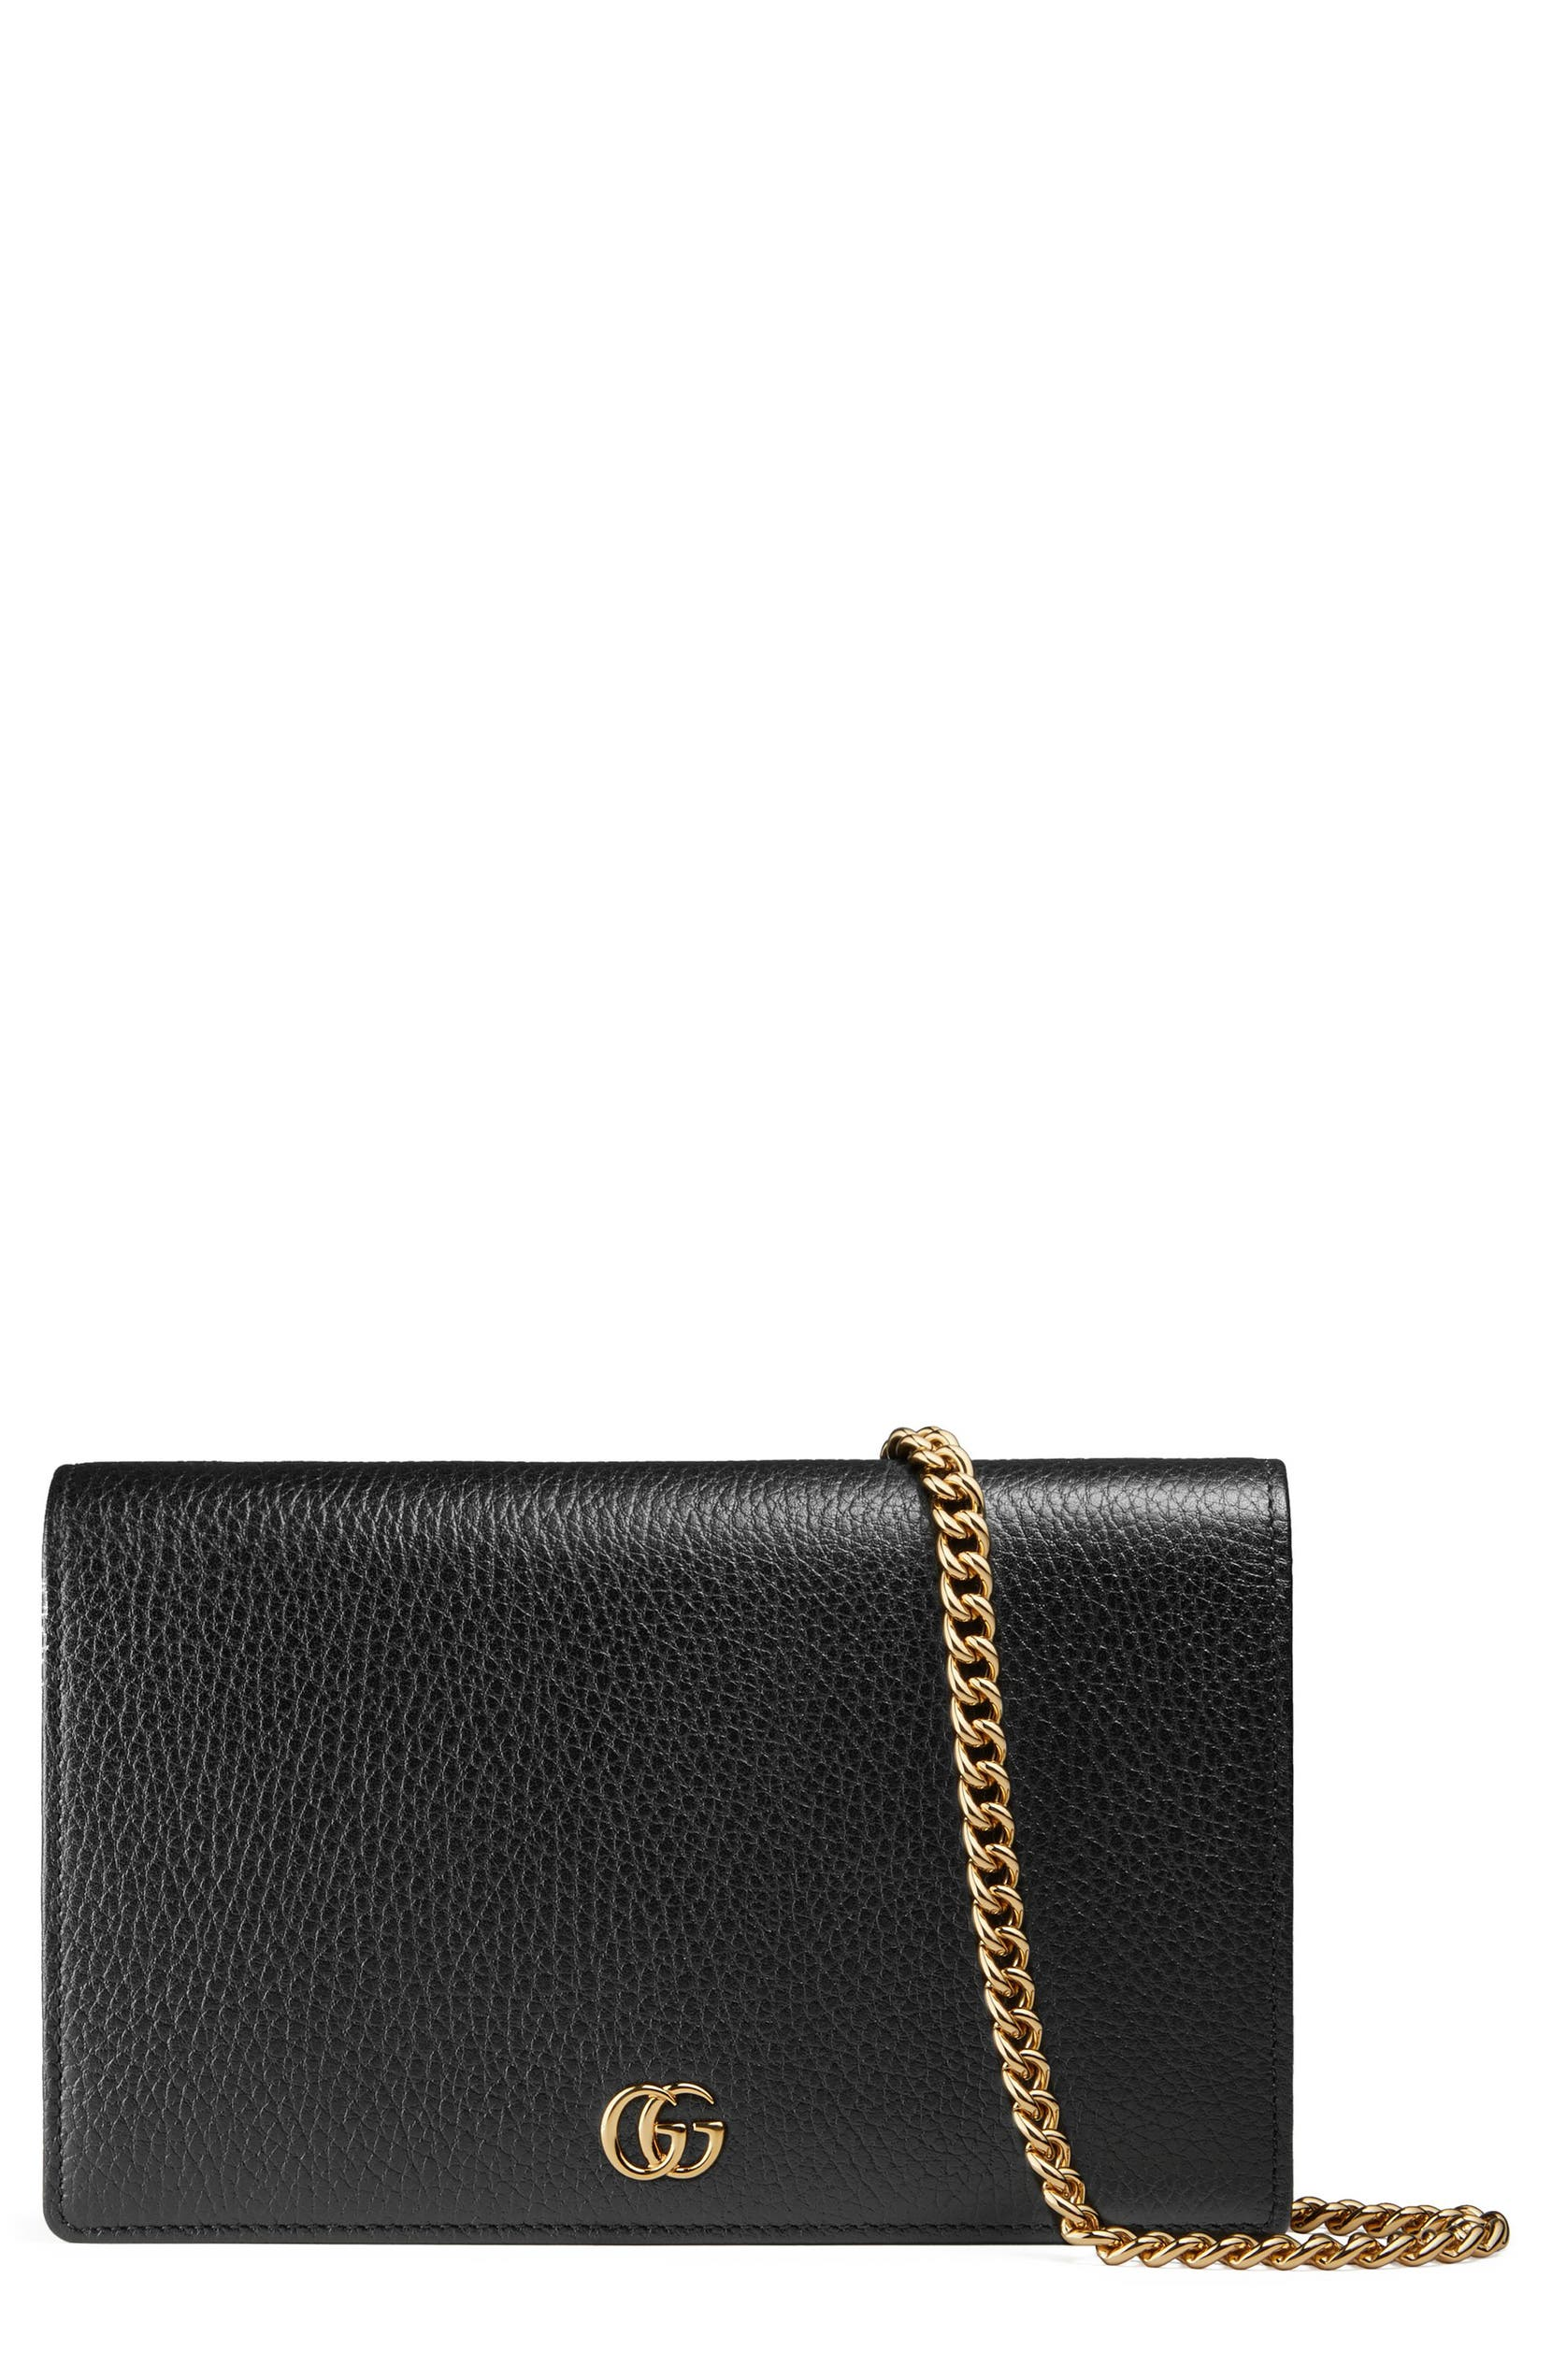 ed52898759ee Gucci Petite Marmont Leather Wallet on a Chain